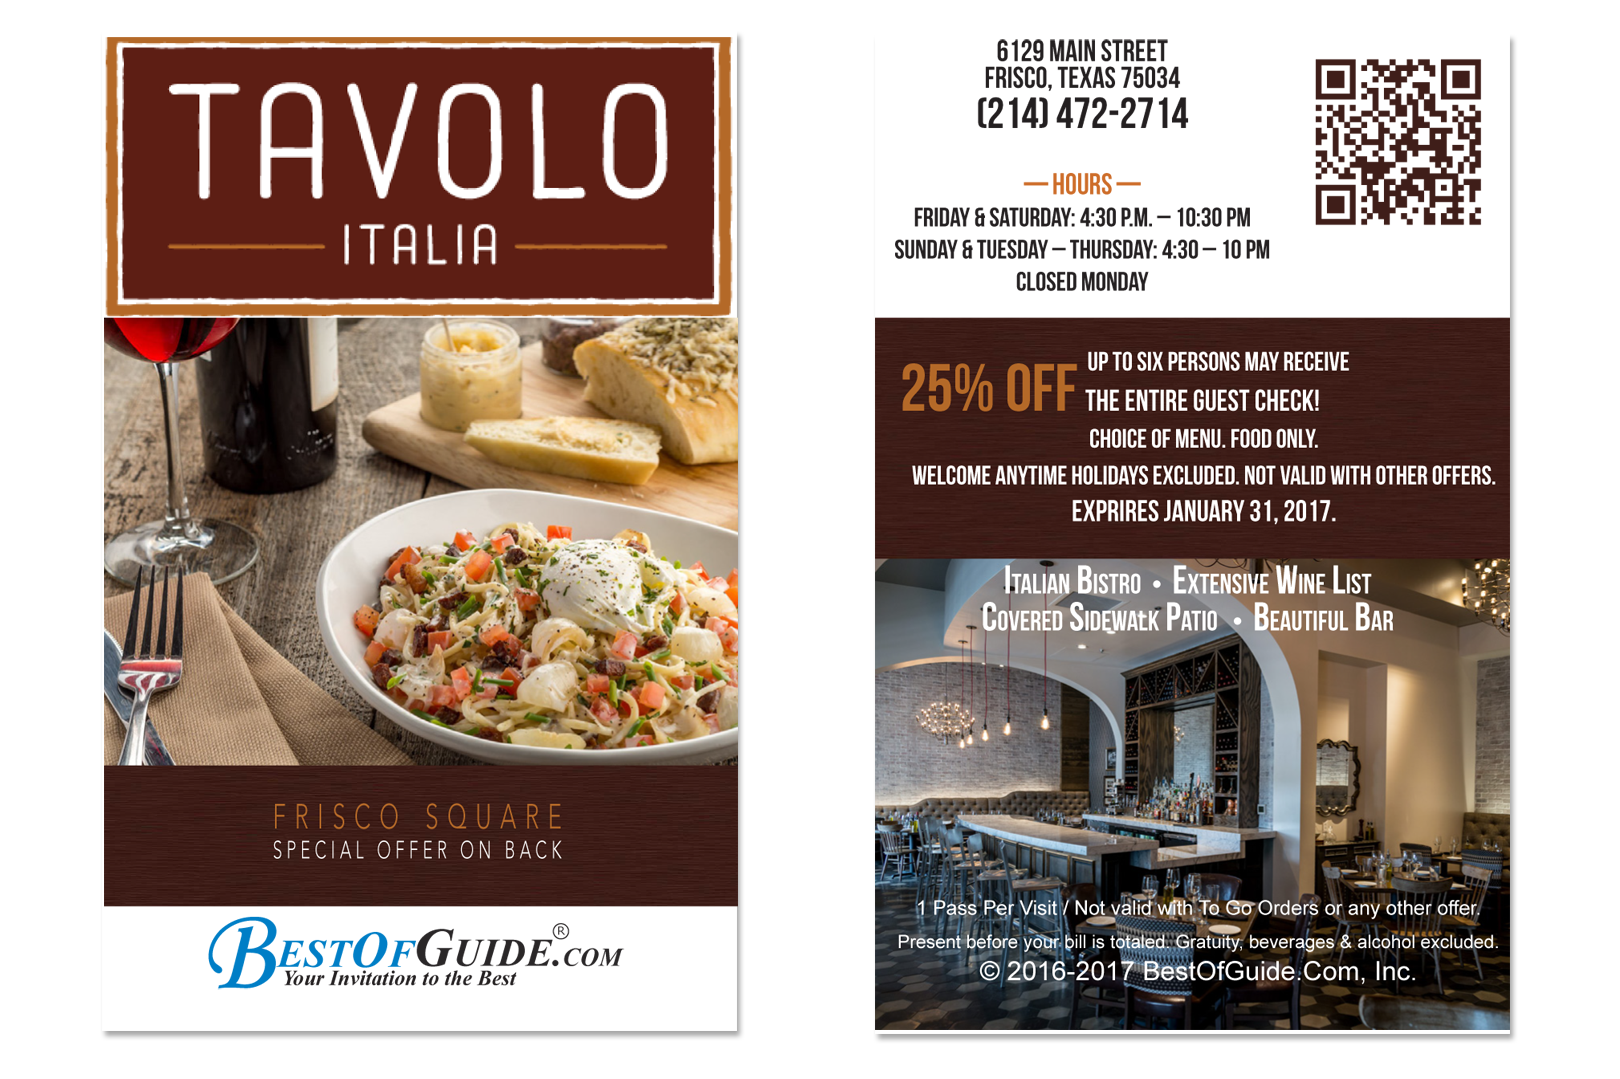 Tavolo Italia - Best of Guide